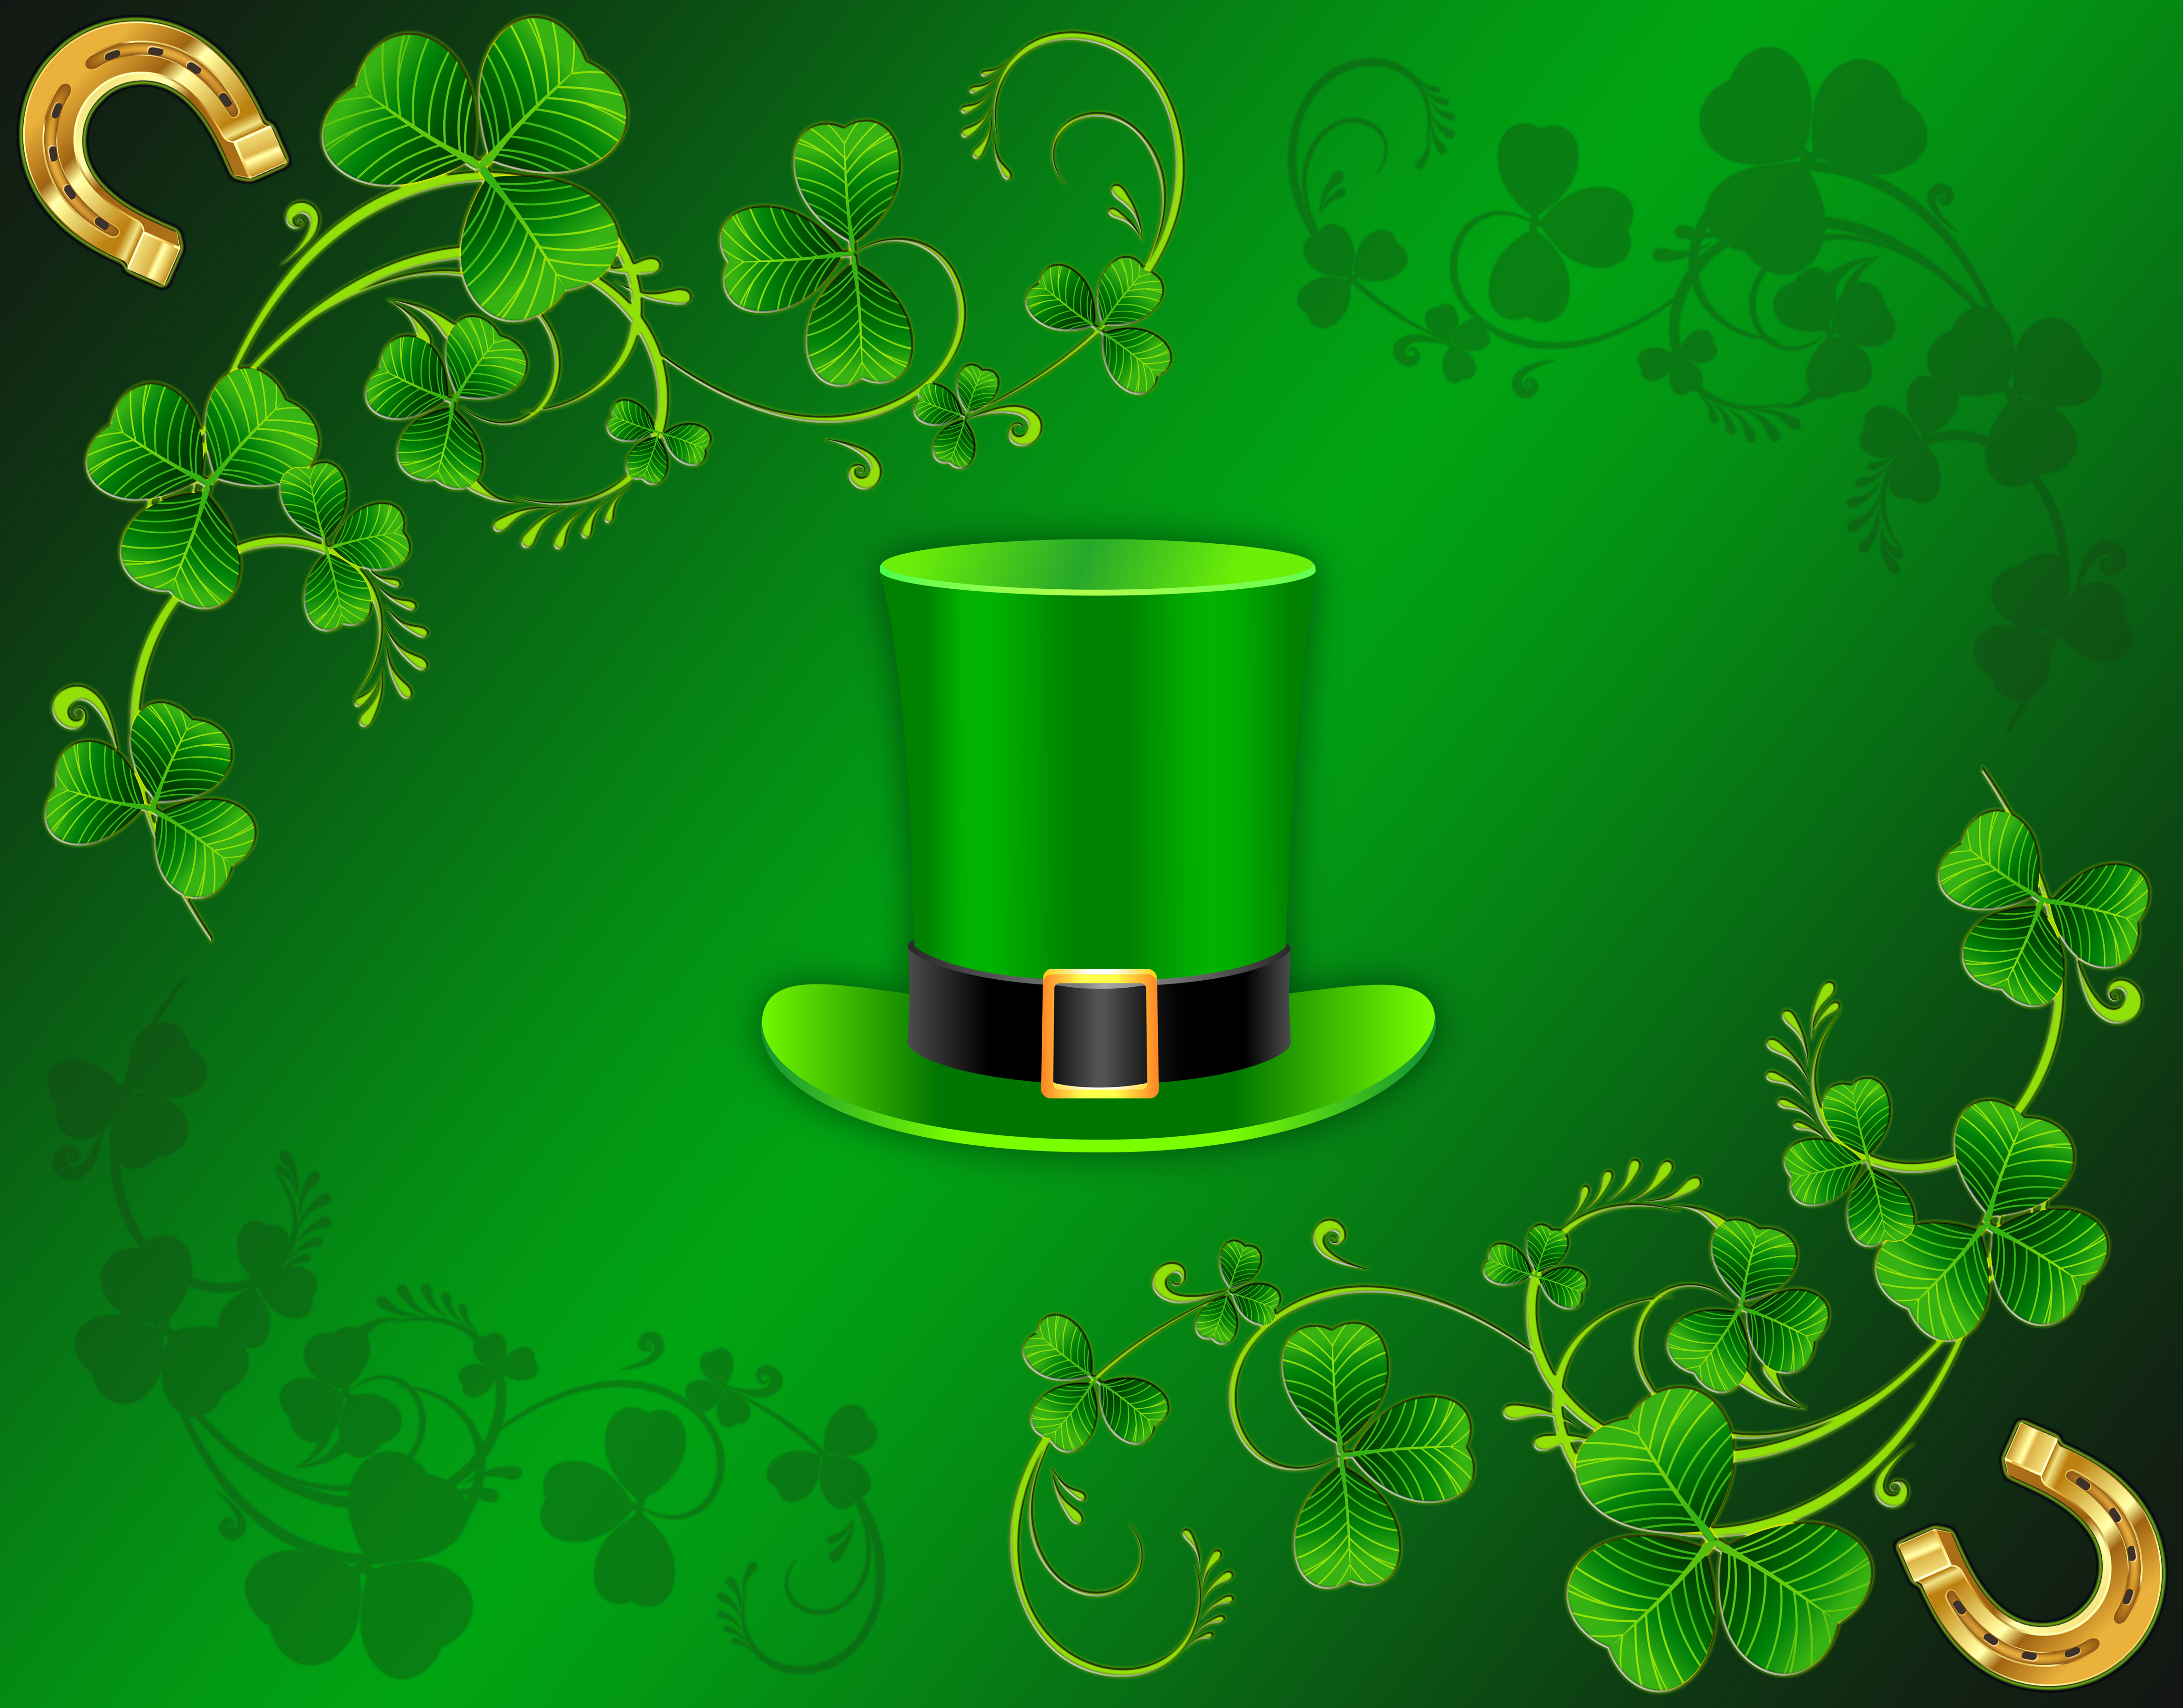 St Patricks Day New Large Wallpaper Gallery Yopriceville   High 4600x3600